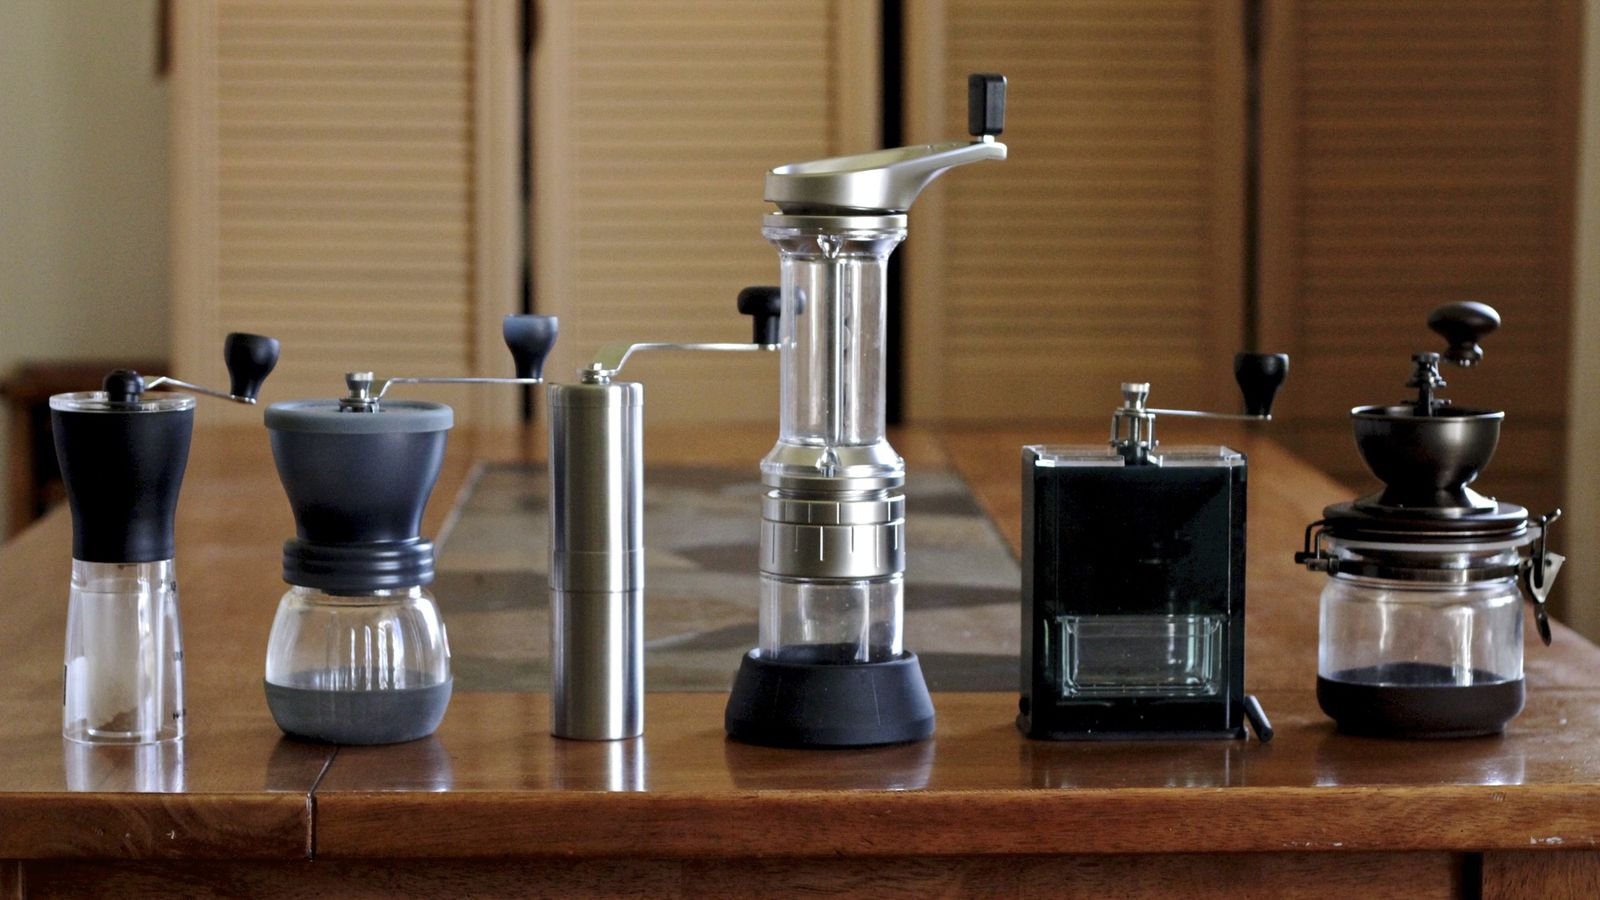 High End Coffee Maker Reviews 2015 : Gadget Review: Six of the Best Hand Coffee Grinders - Eater